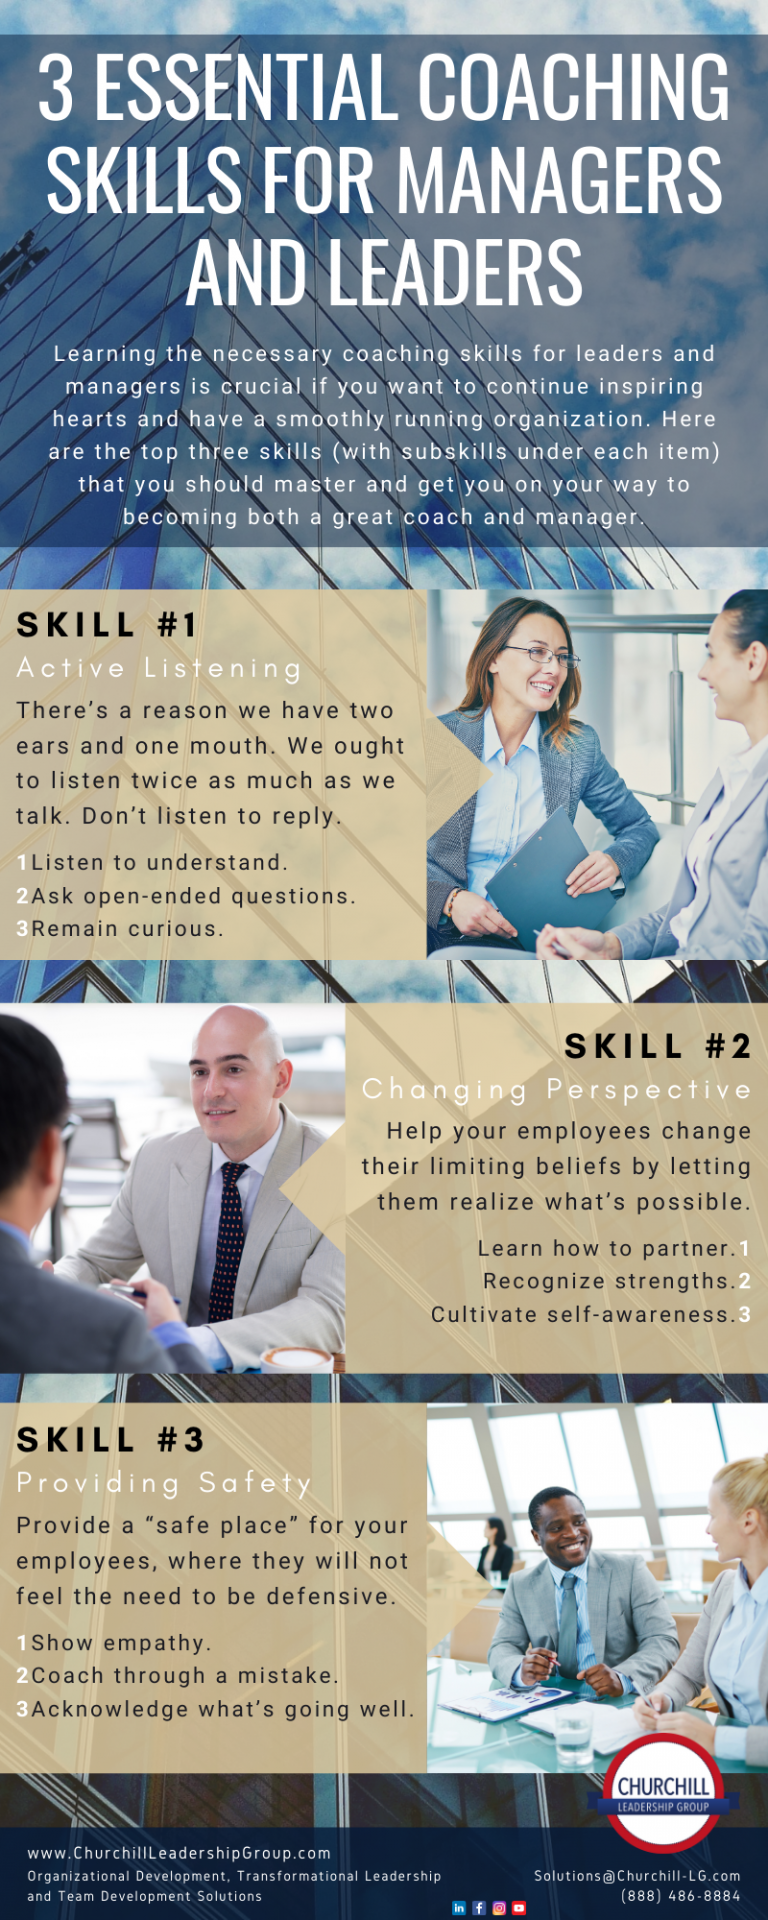 3-Essential-Coaching-Skills-for-Managers-and-Leaders-infographic